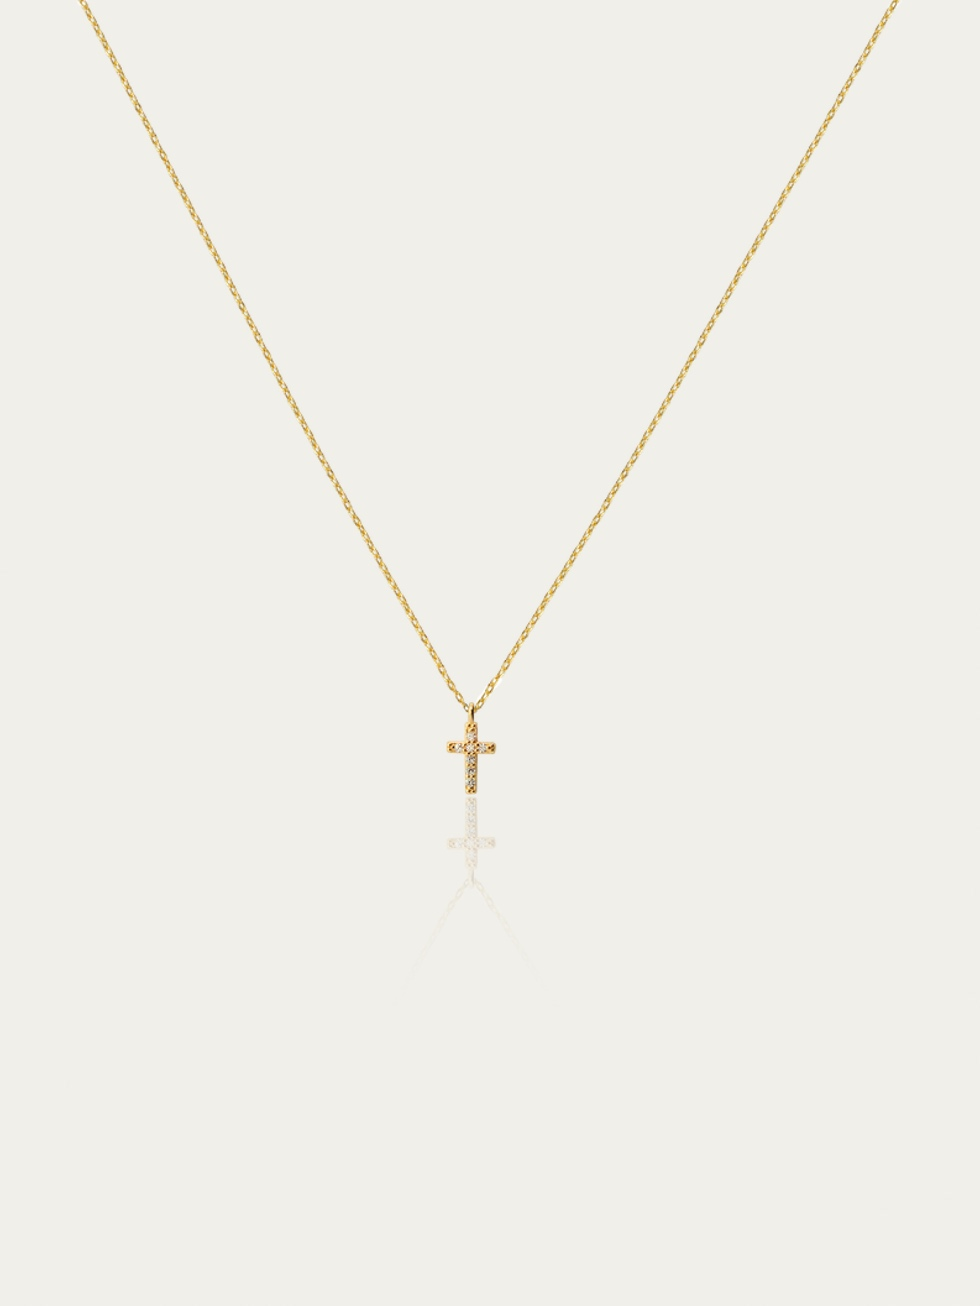 Gold TB CROSS necklace